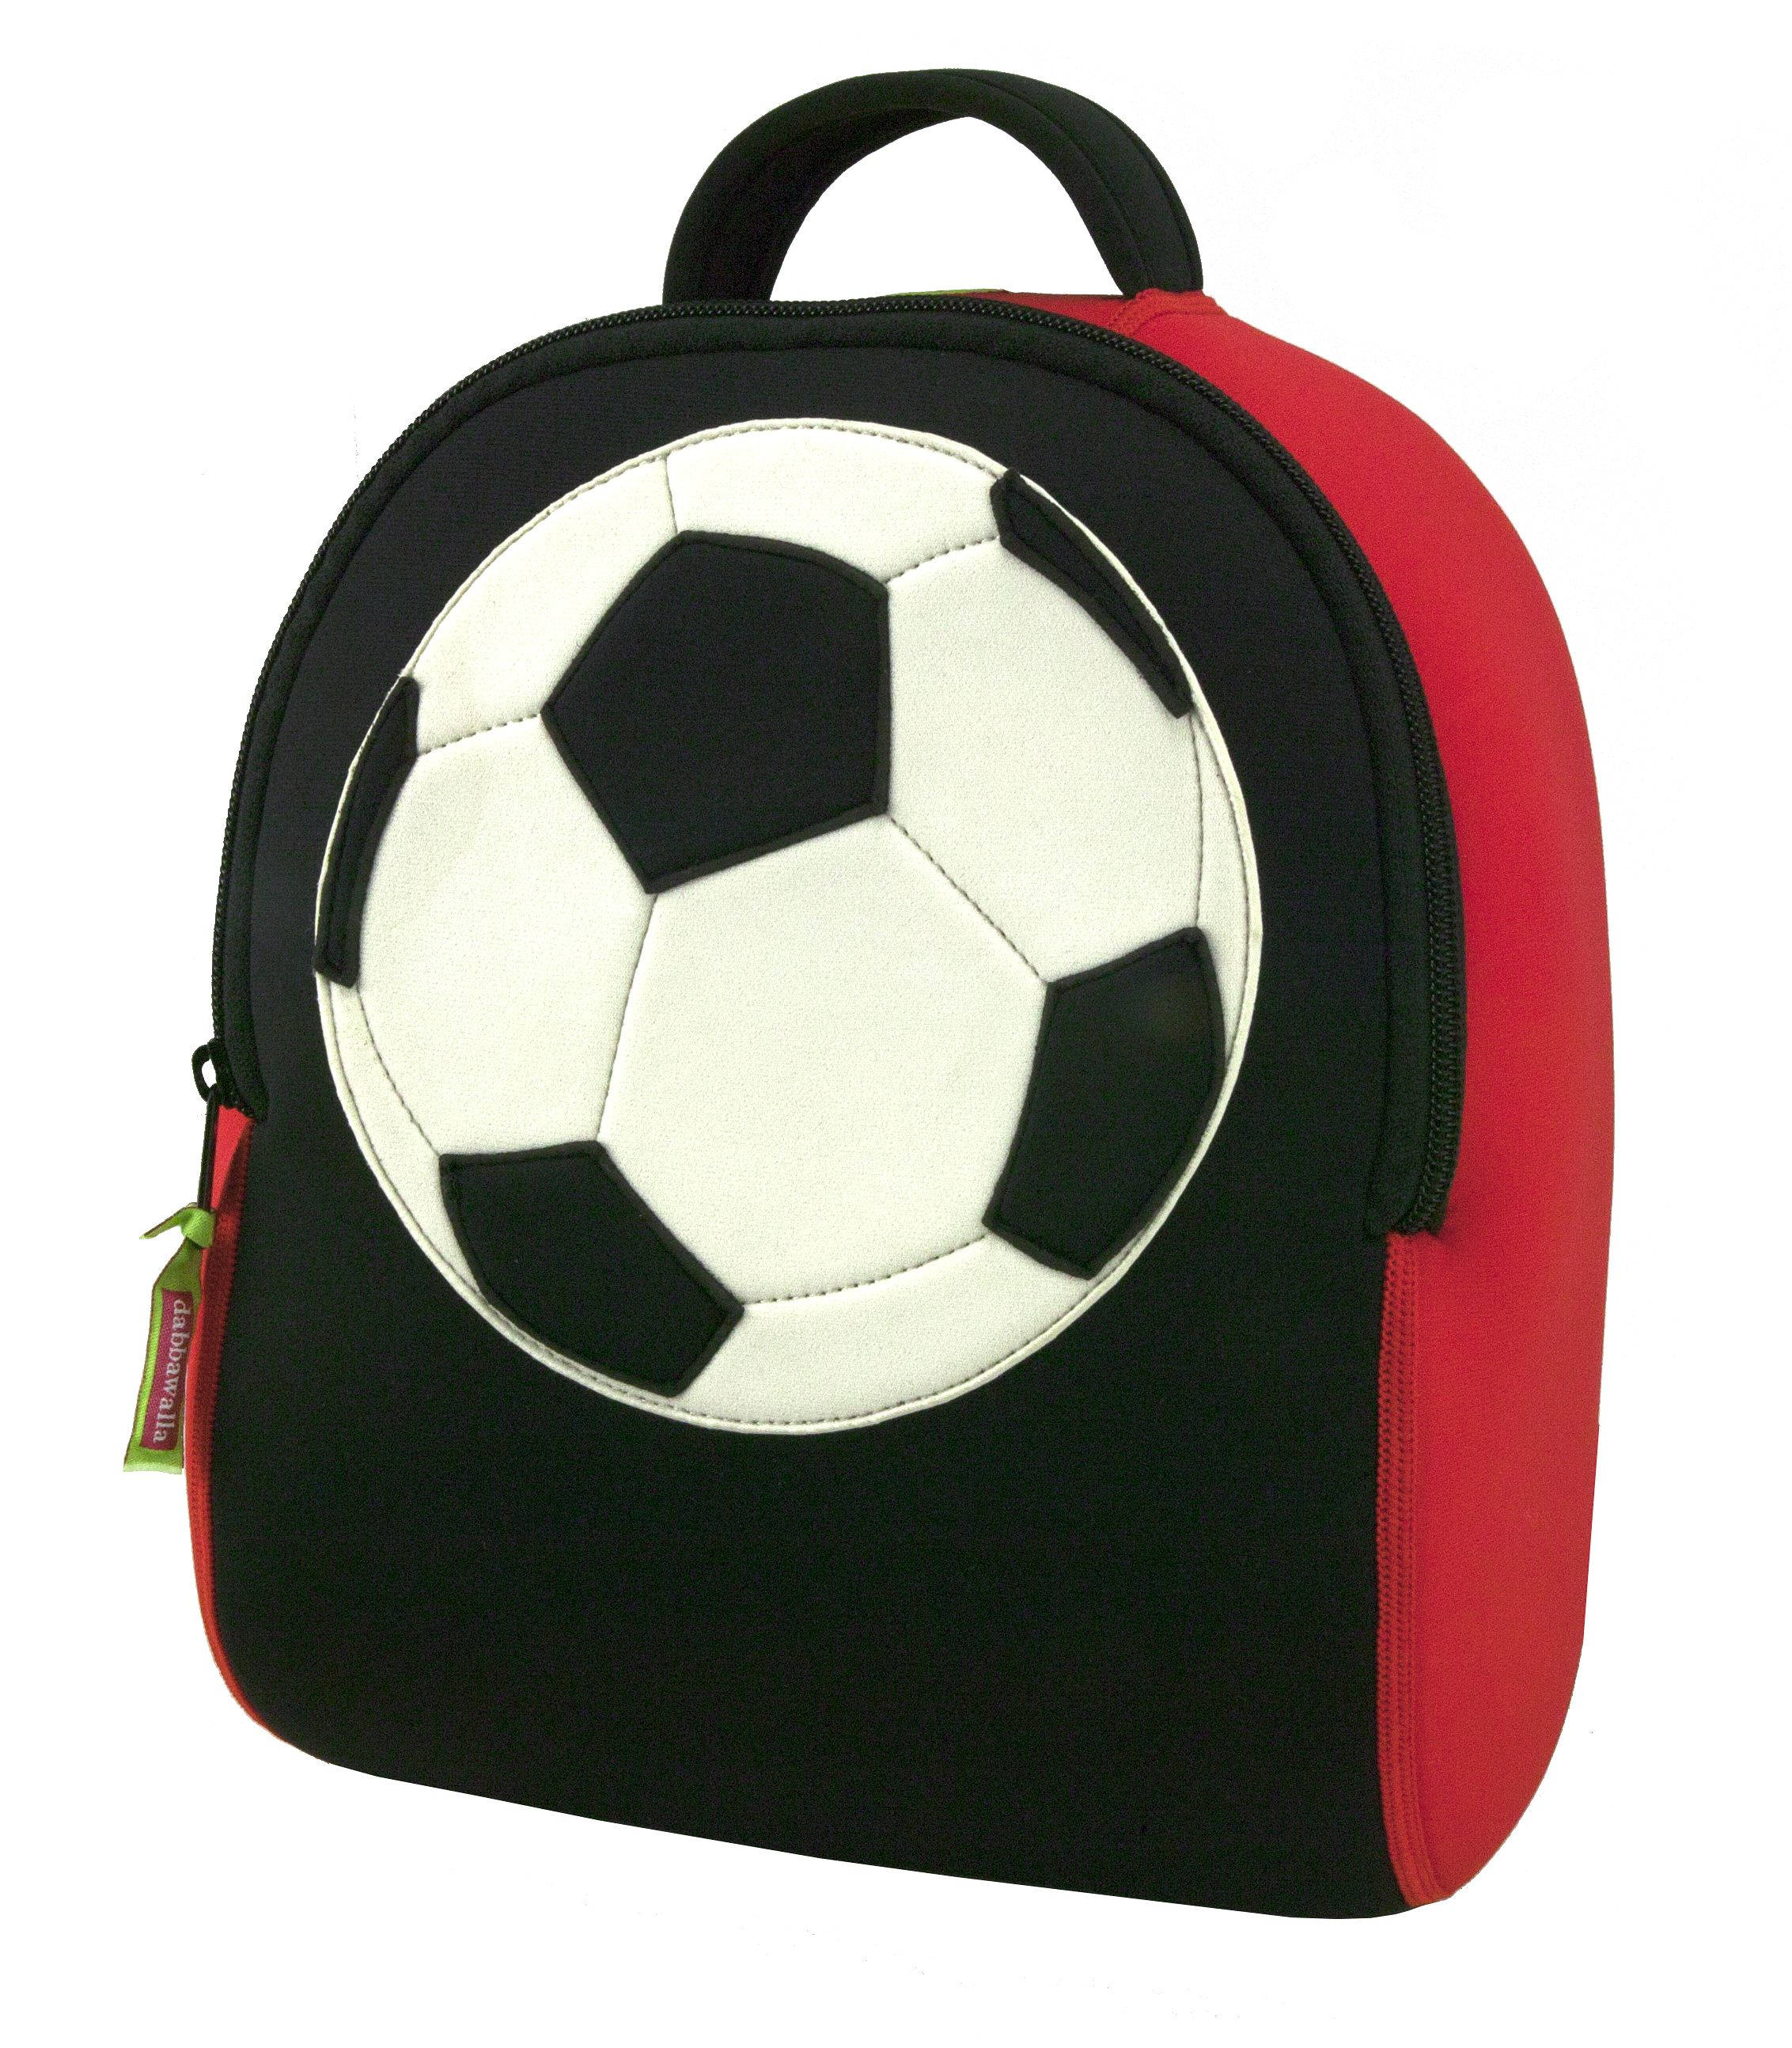 5801e99370 This soccer themed preschool backpack is a game stopper that kids will love  for its bright